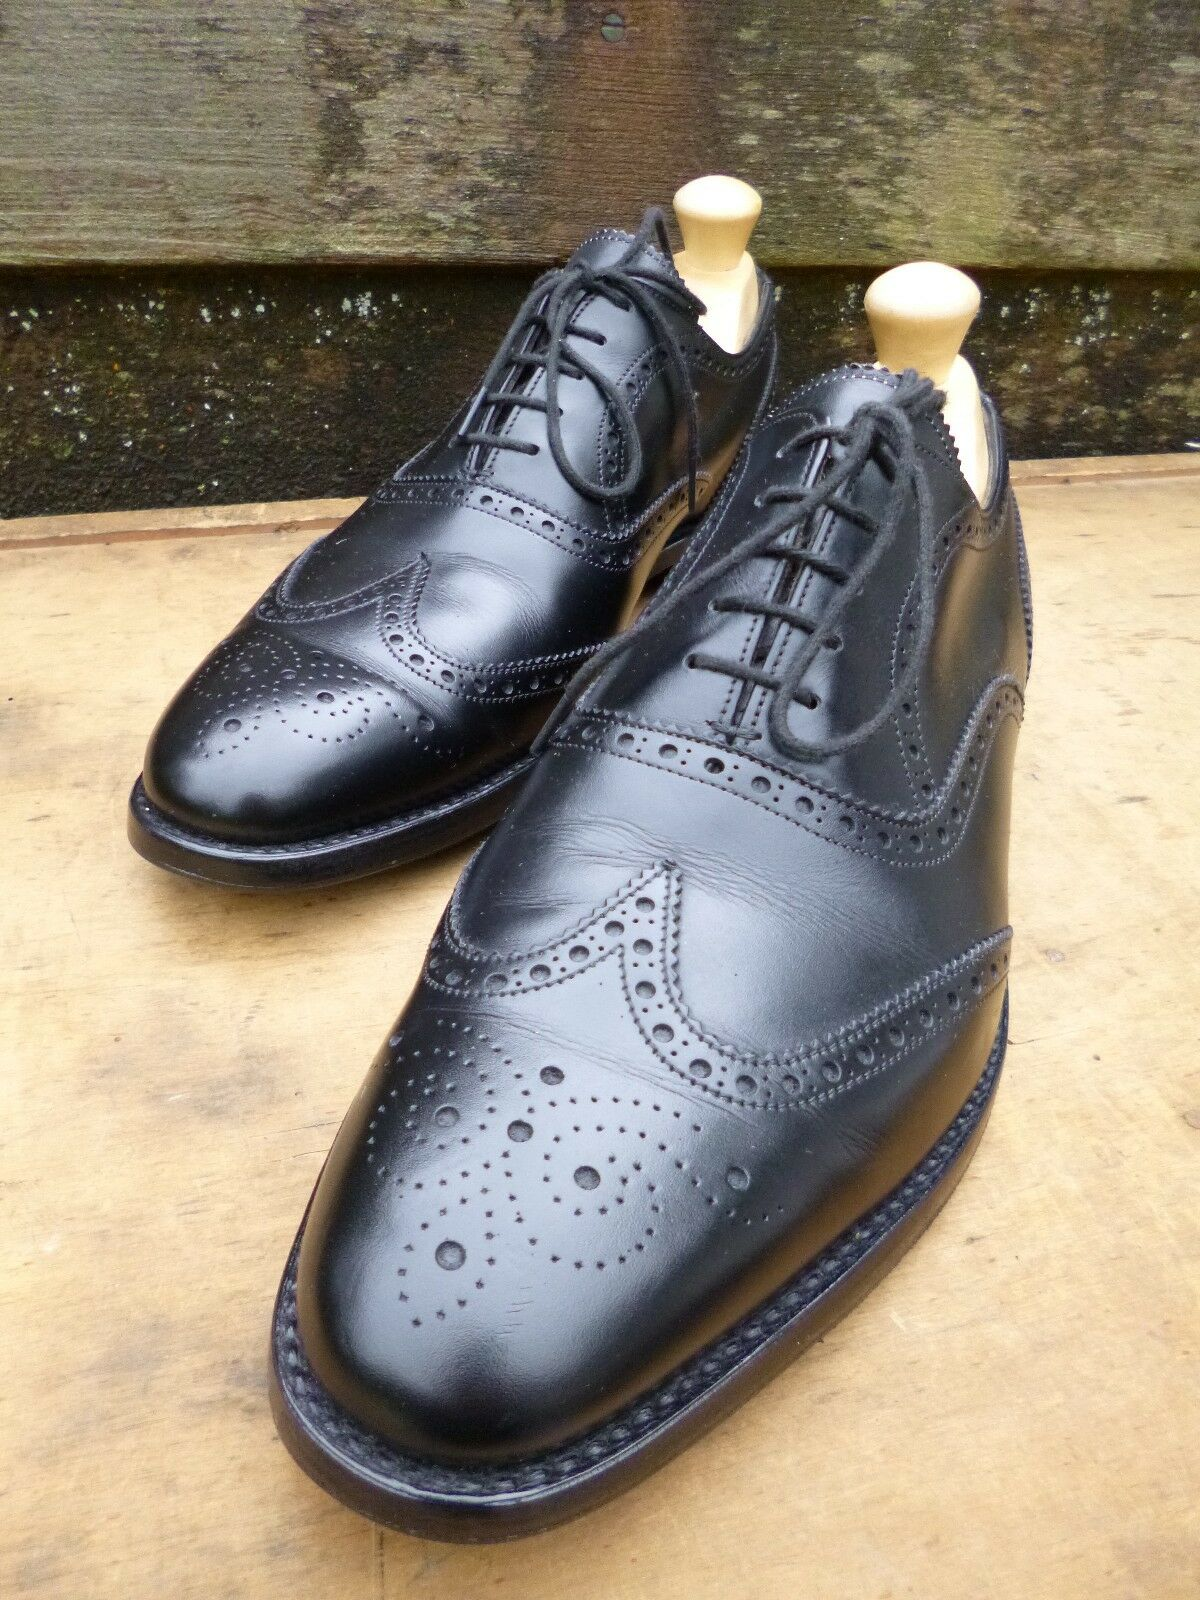 CHEANEY / CHURCH BROGUES - BLACK – UK 8.5 – BROAD – EXCELLENT CONDITION